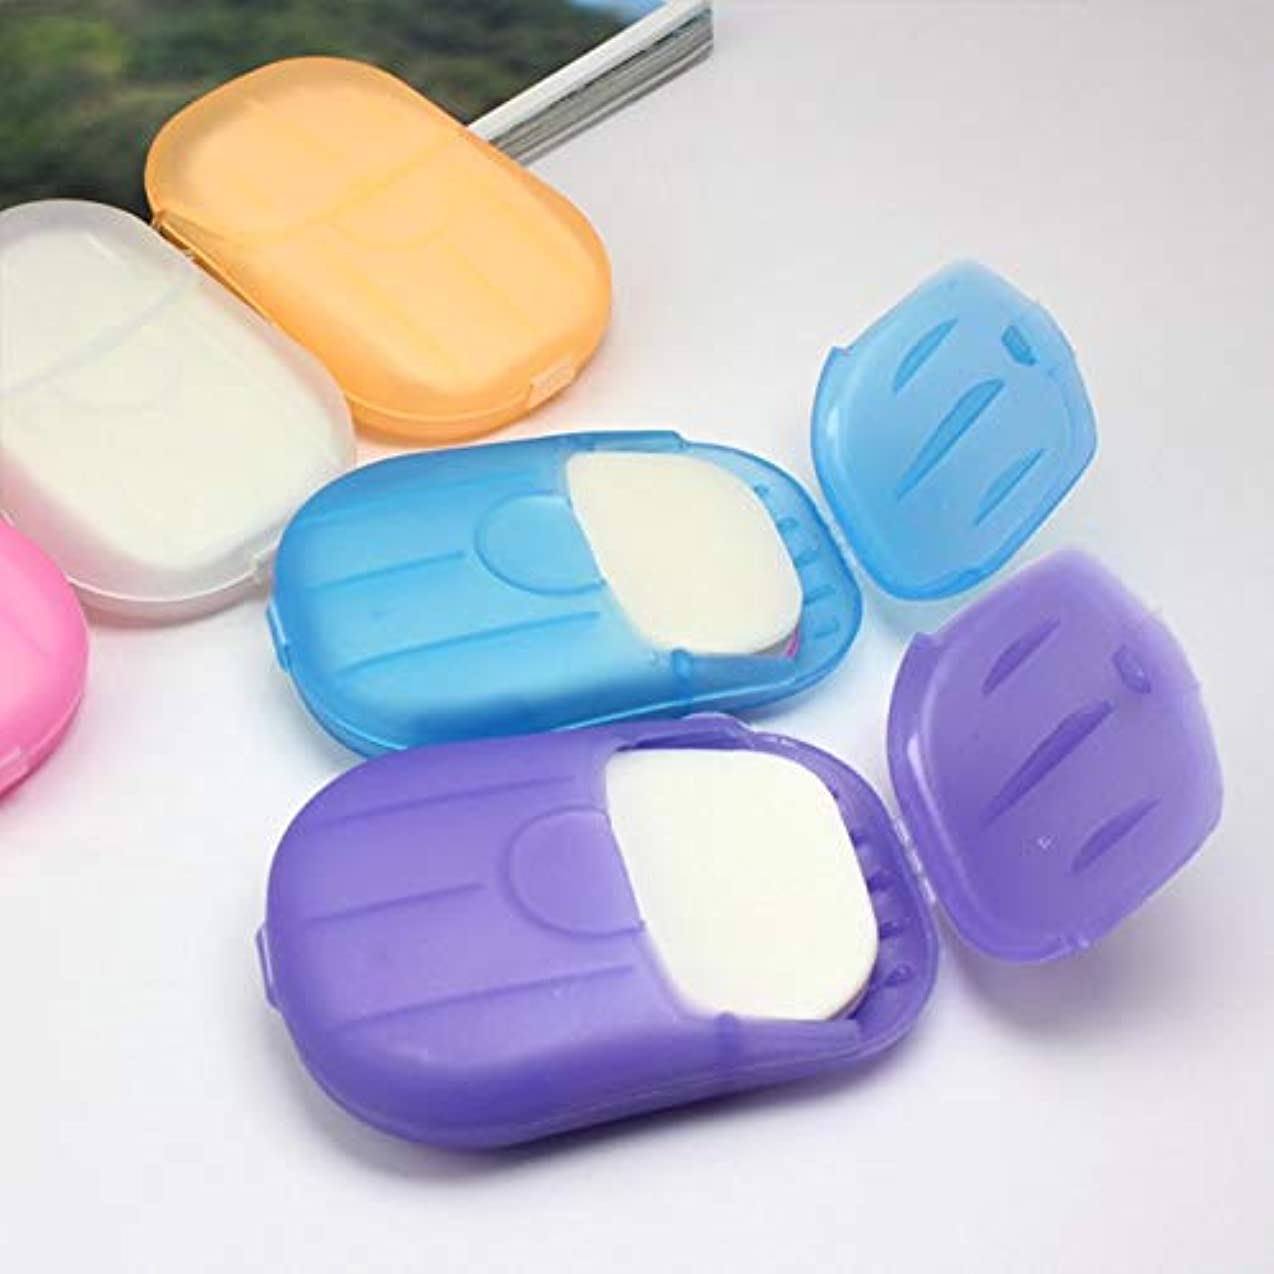 自分ランドリー厚い20 Pcs Paper Soap Outdoor Travel Bath Soap Tablets Portable Hand-washing